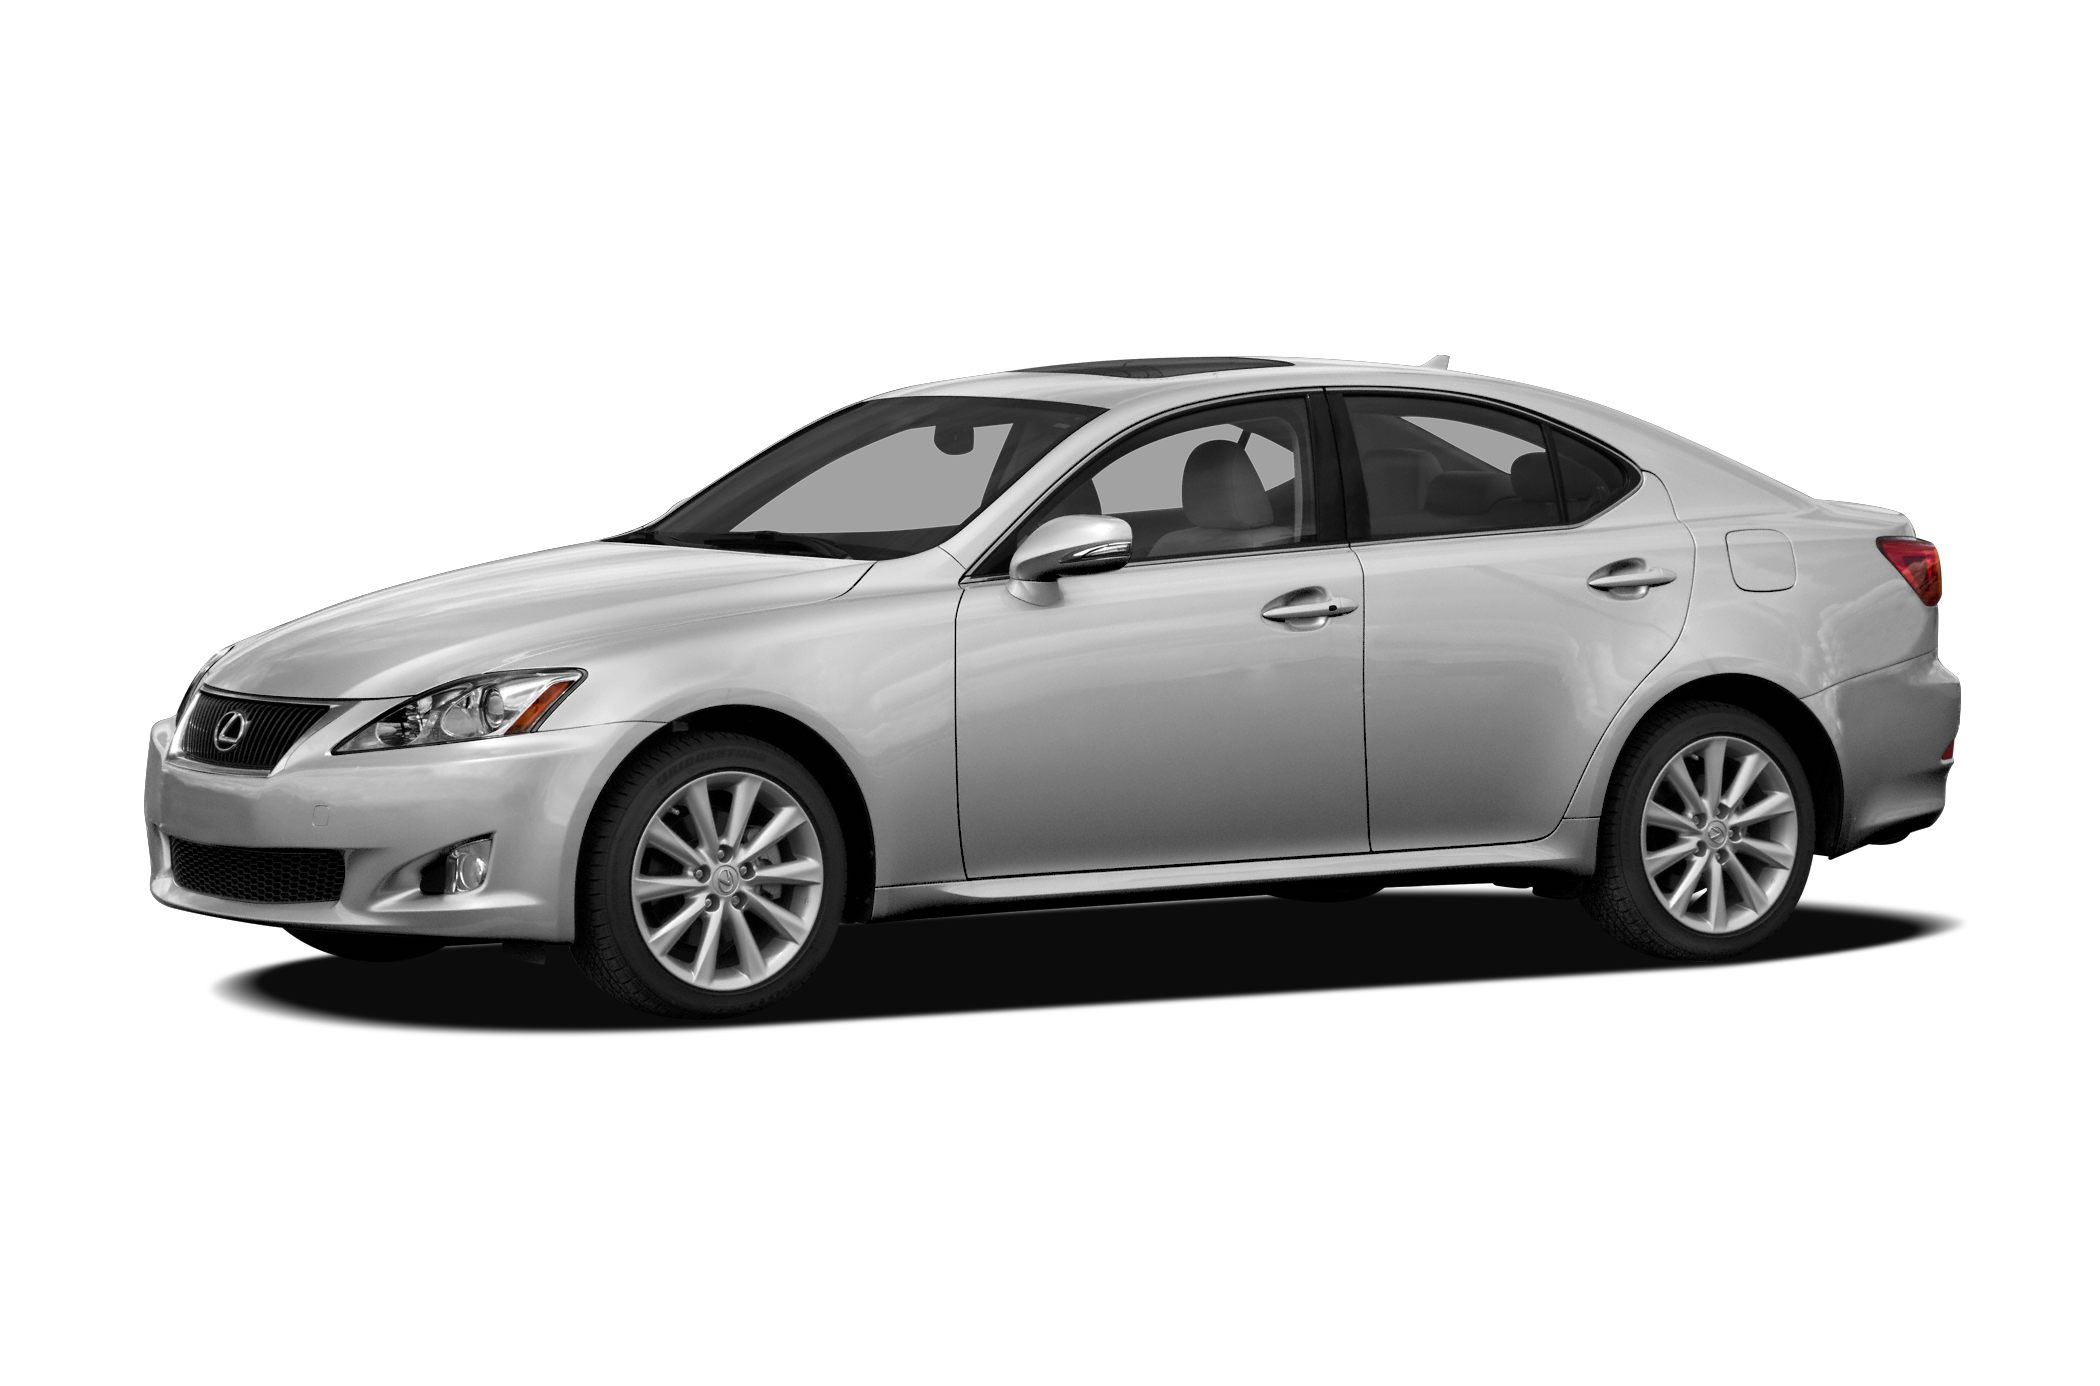 2010 Lexus IS 250 Sedan for sale in Santa Rosa for $23,975 with 39,660 miles.